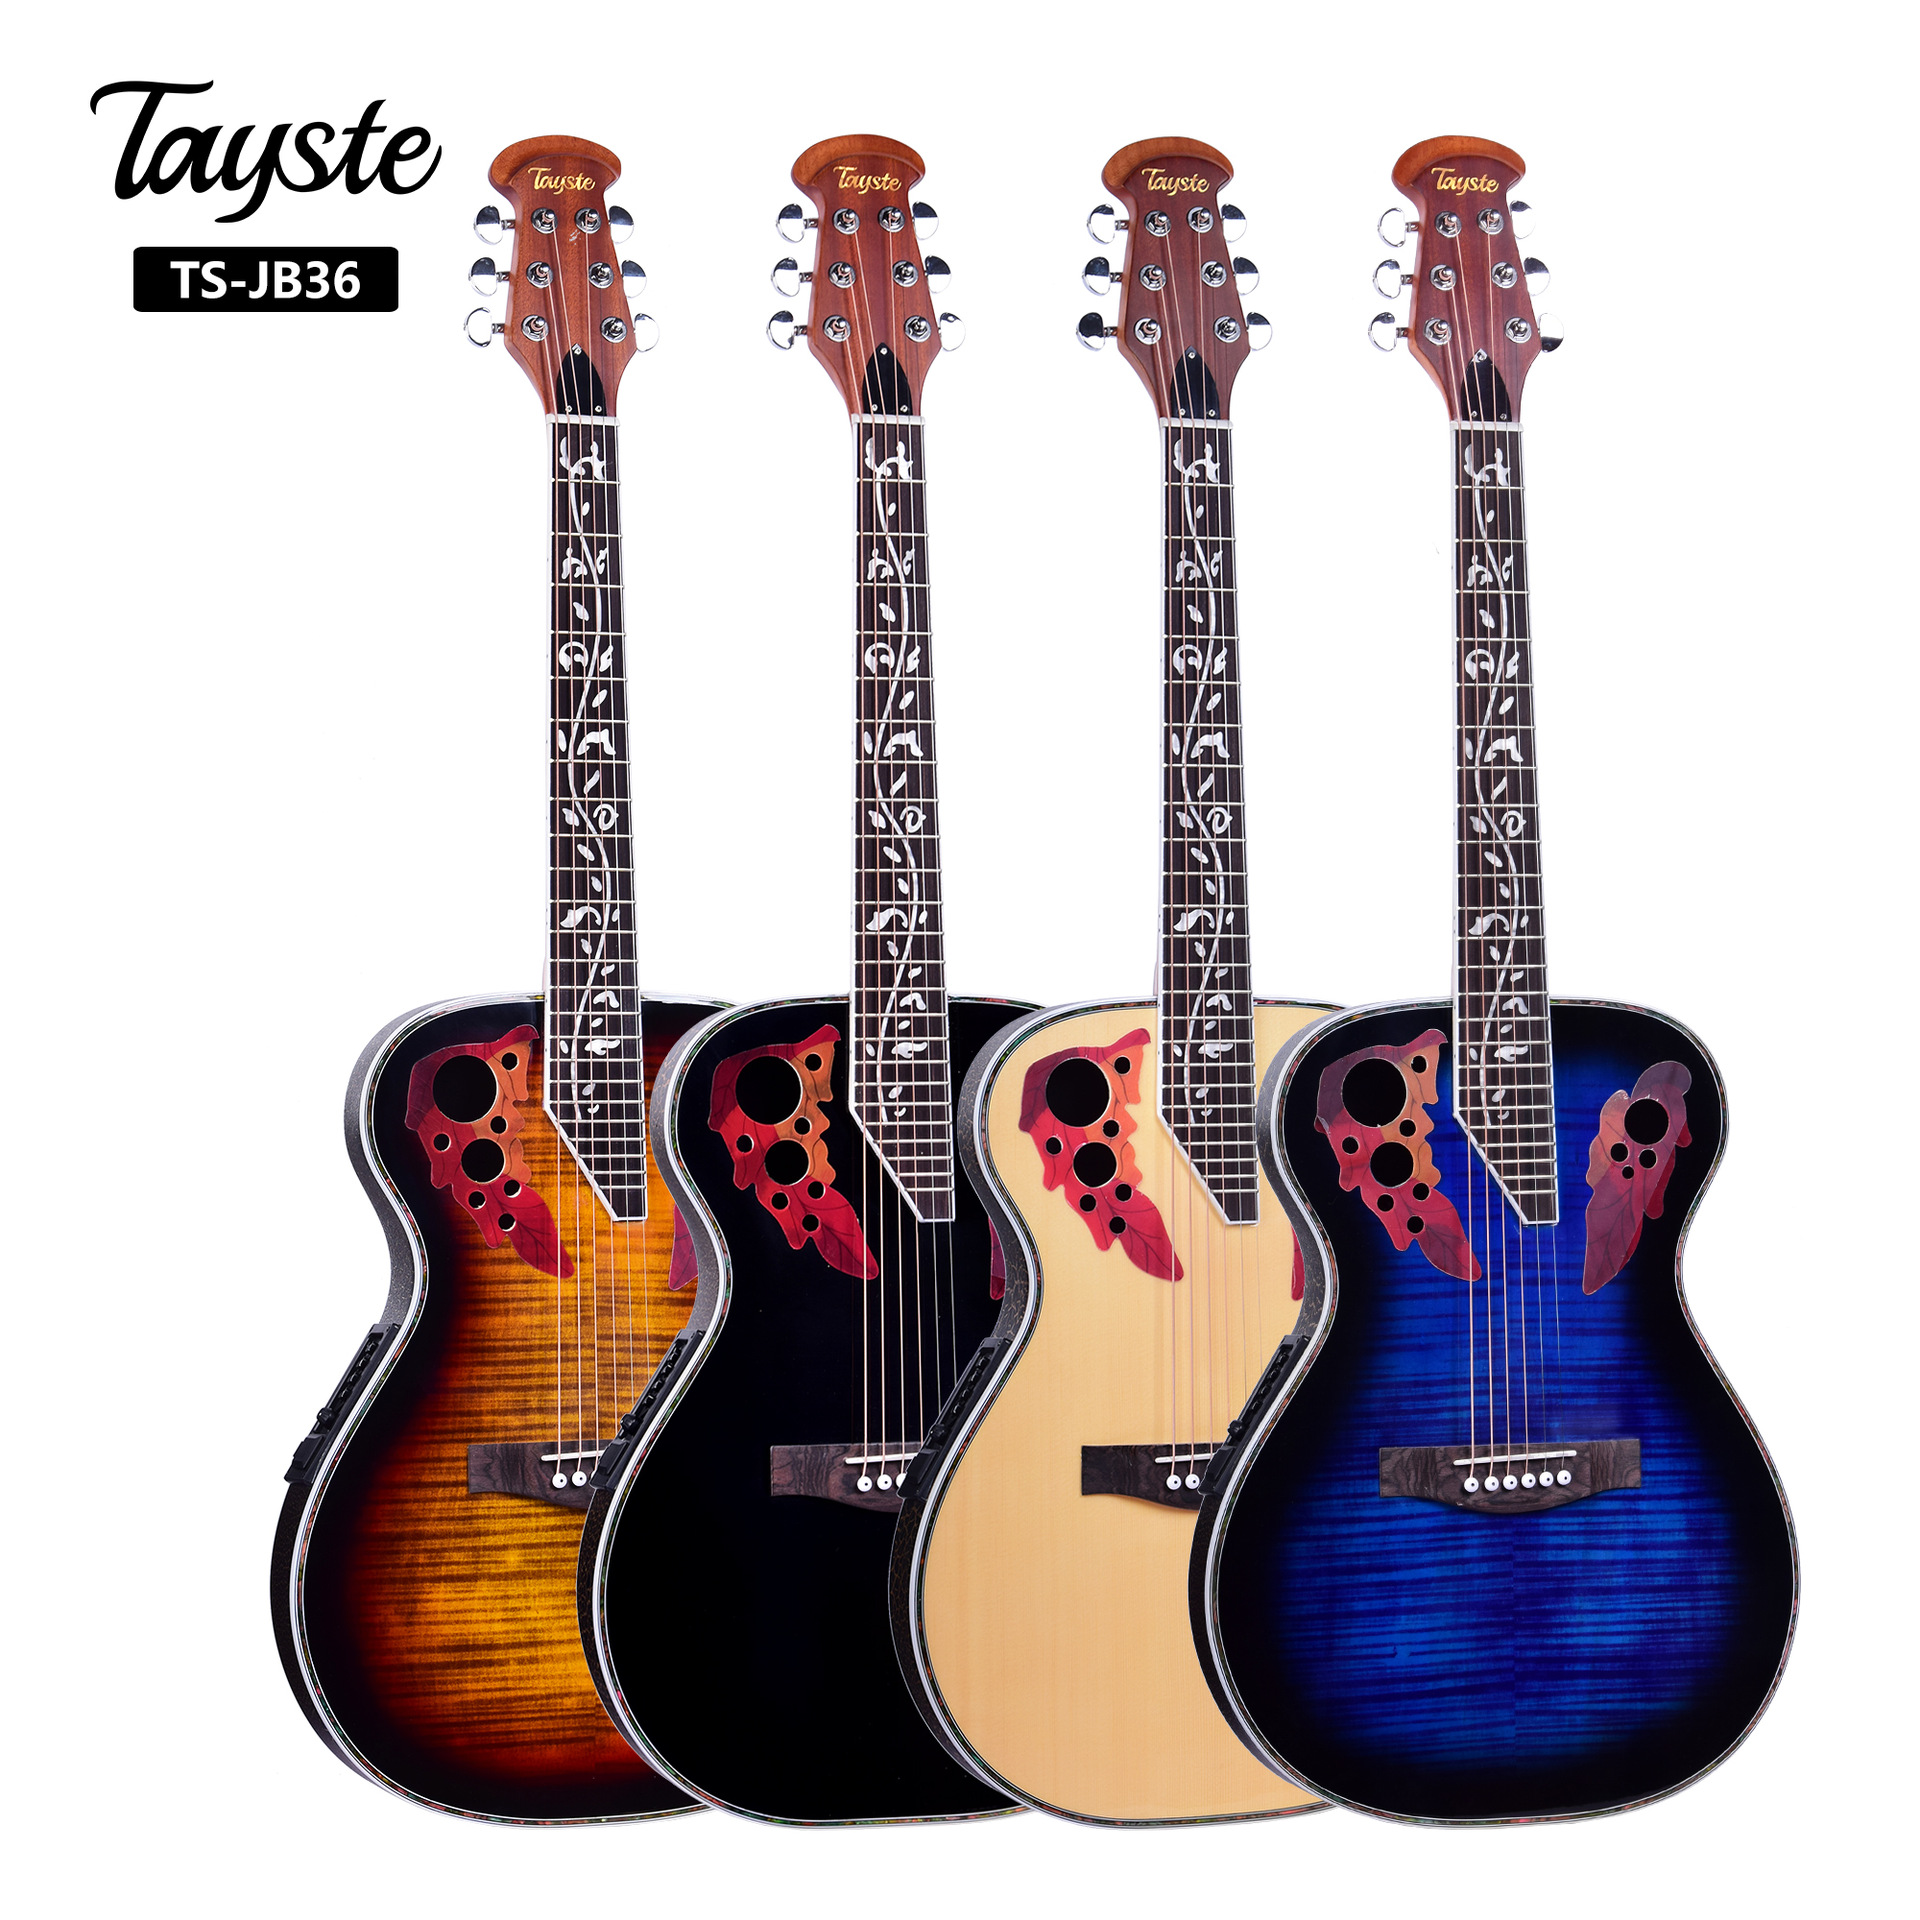 Hot <font><b>36</b></font> Inch 6 String Acoustic <font><b>Guitar</b></font> Concert Electric <font><b>Guitar</b></font> Rose Wood Fingerboard Crack <font><b>Guitar</b></font> Band Package image